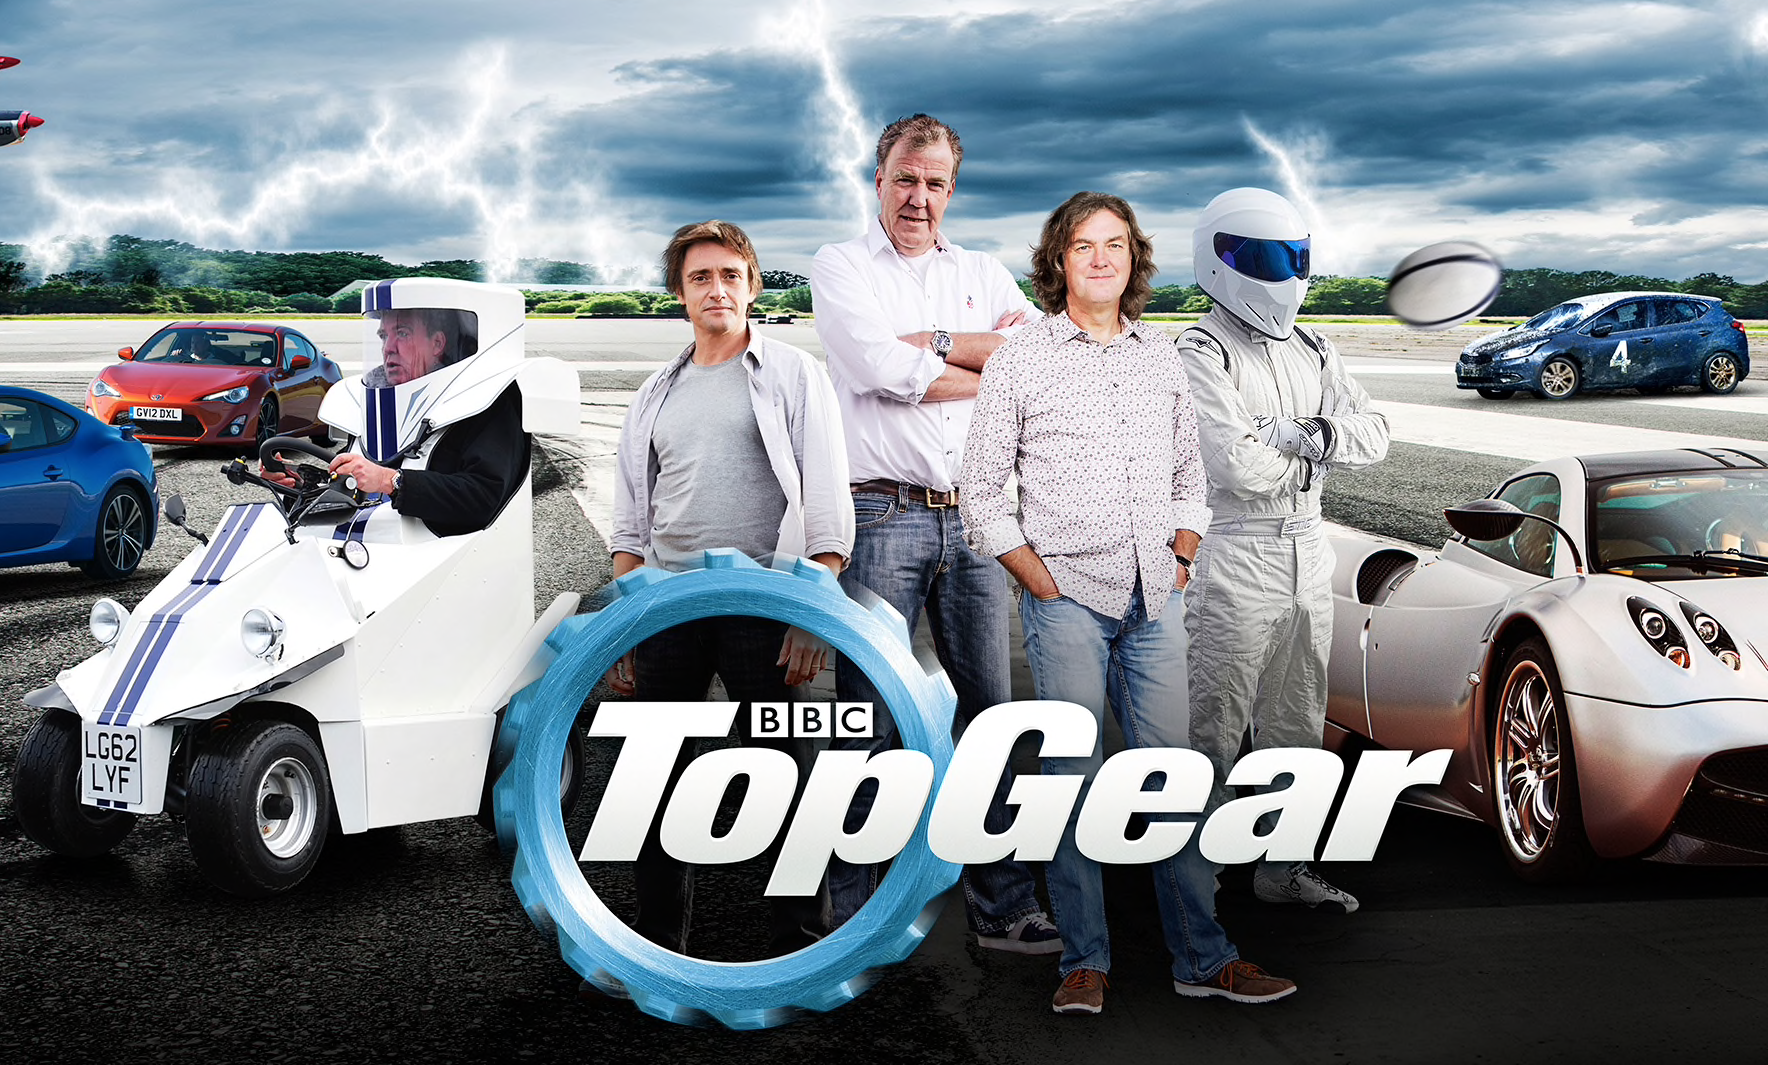 Top Gear Jeremy Clarkson, Richard Hammond, James May, and the Stig